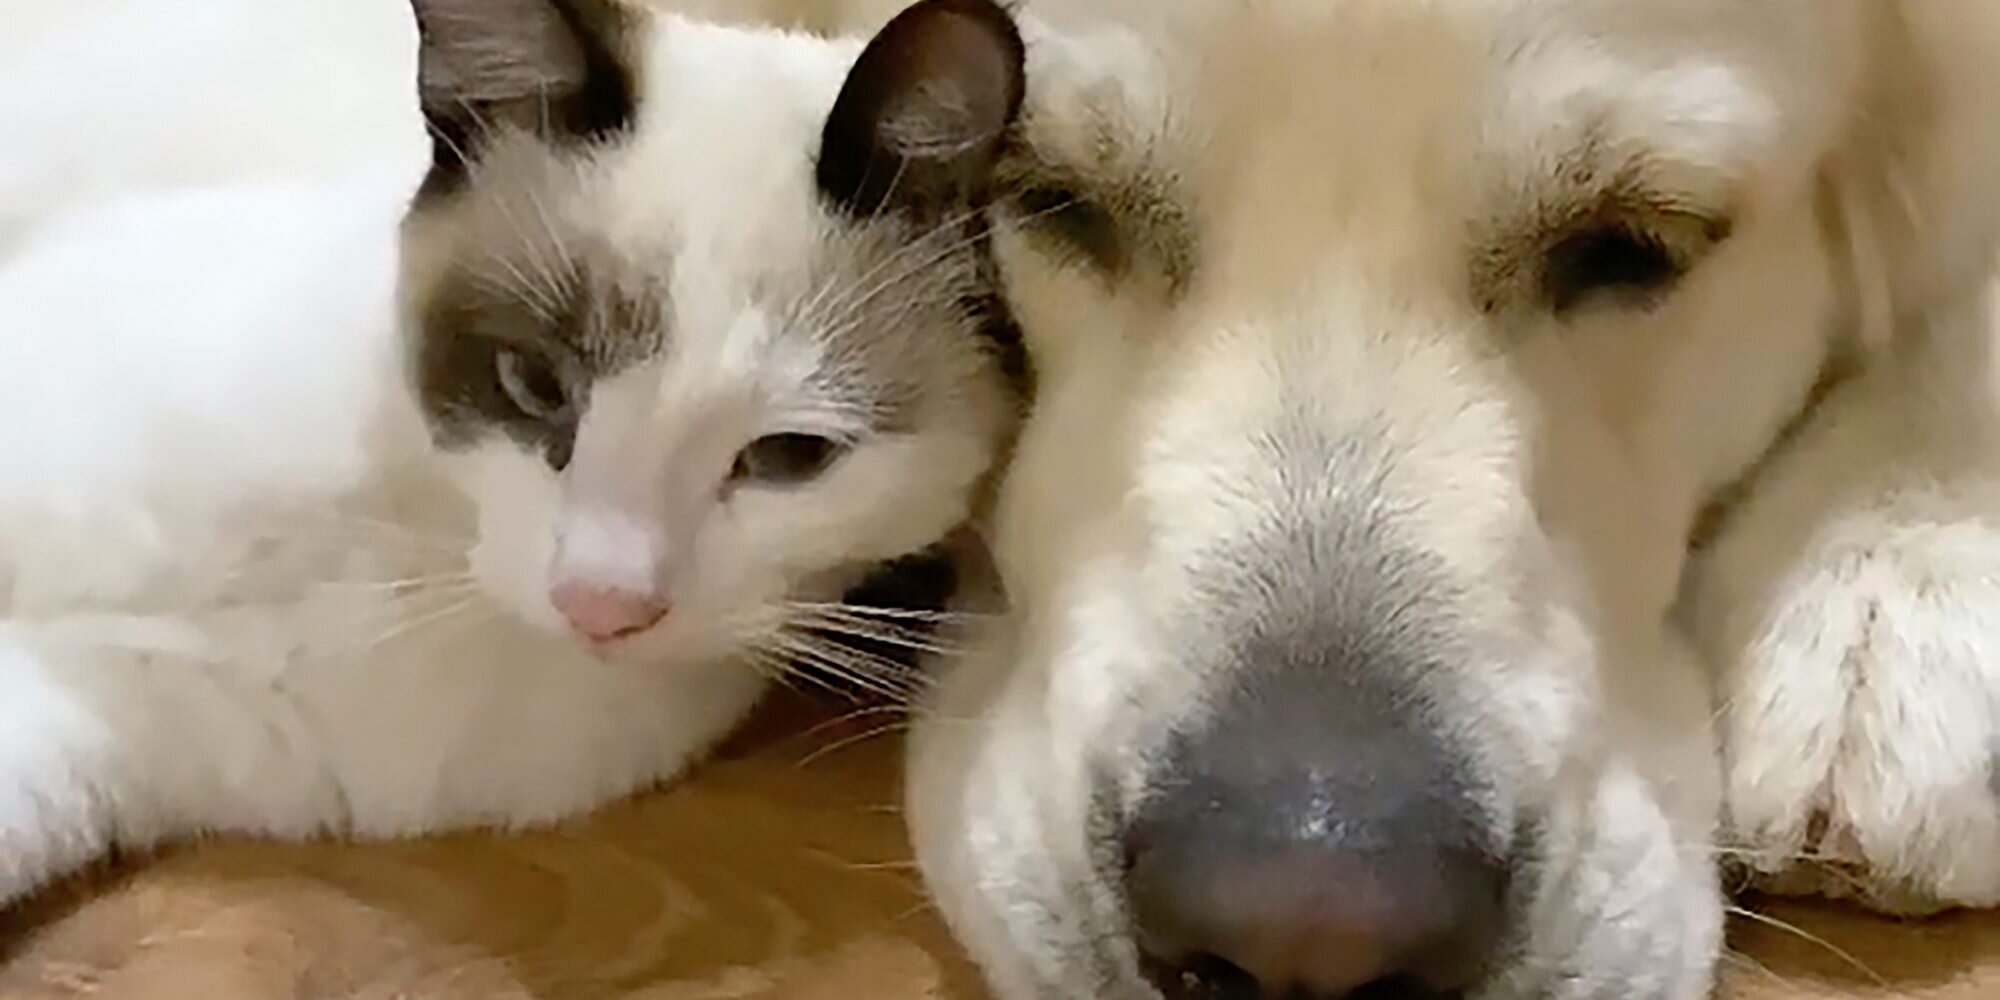 Golden Retriever Meets New Kitten for the First Time in Adorable Video